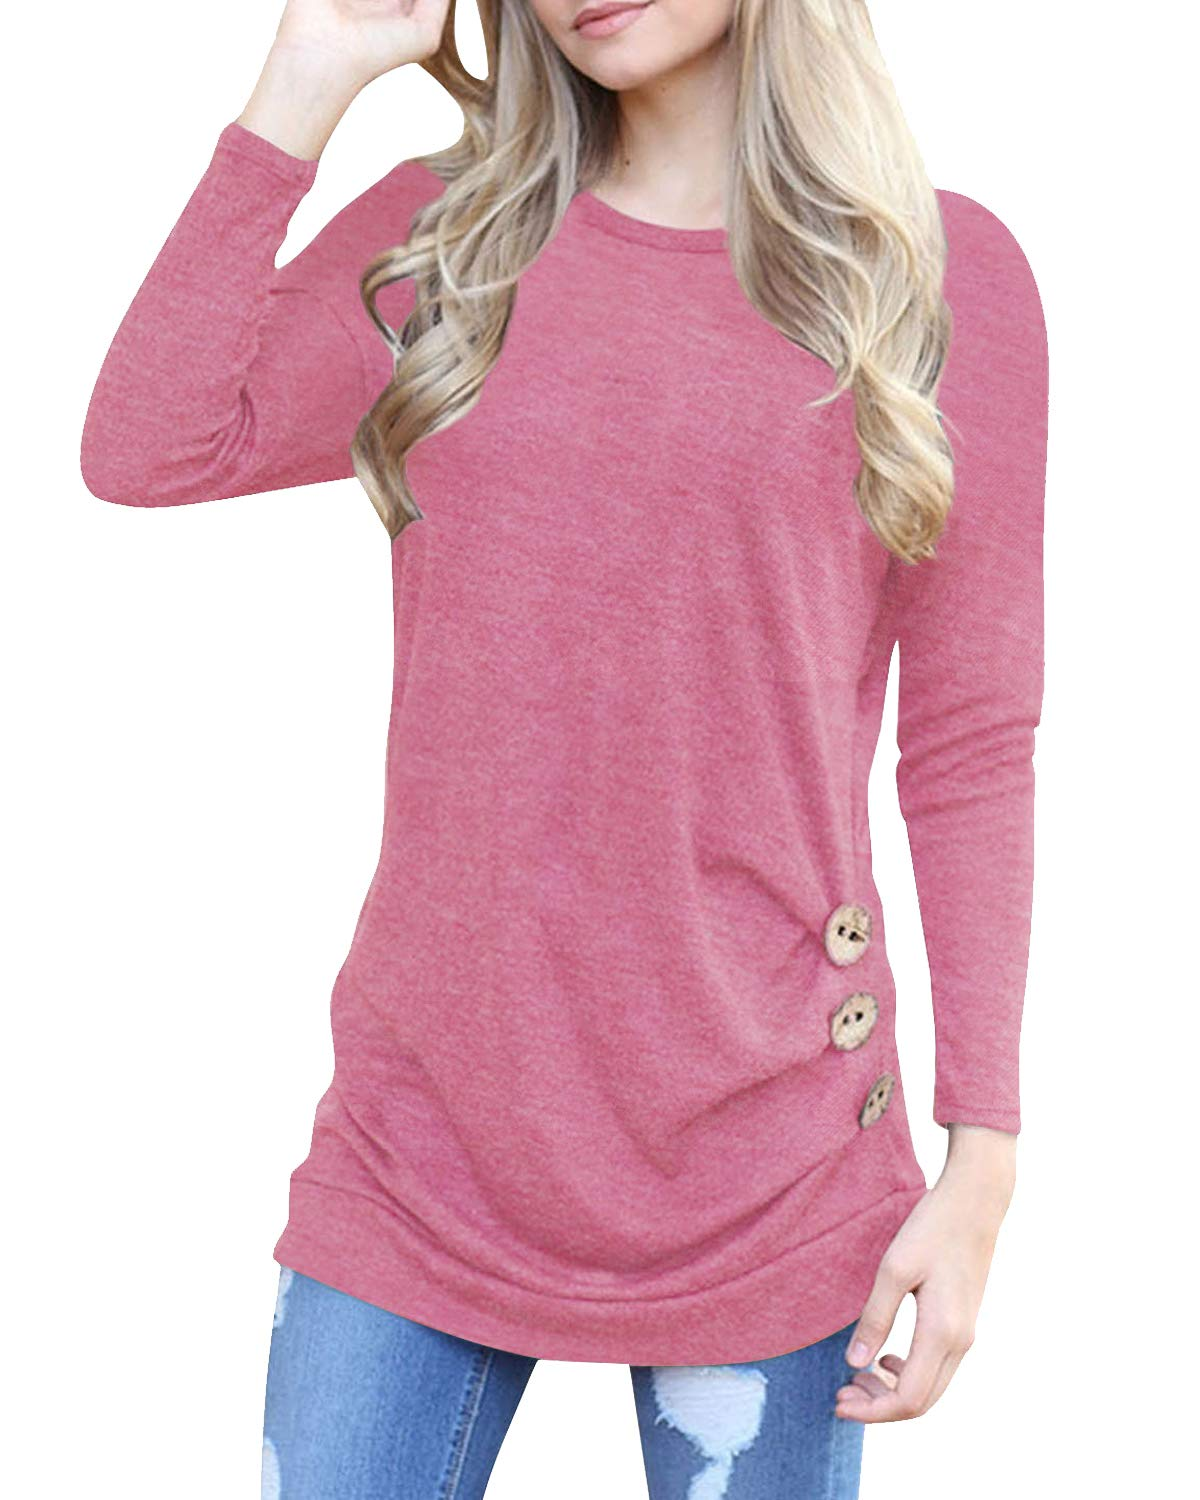 deesdail Womens Long Sleeve Casual T Shirts Button Trim Loose Tunic Tops Pink